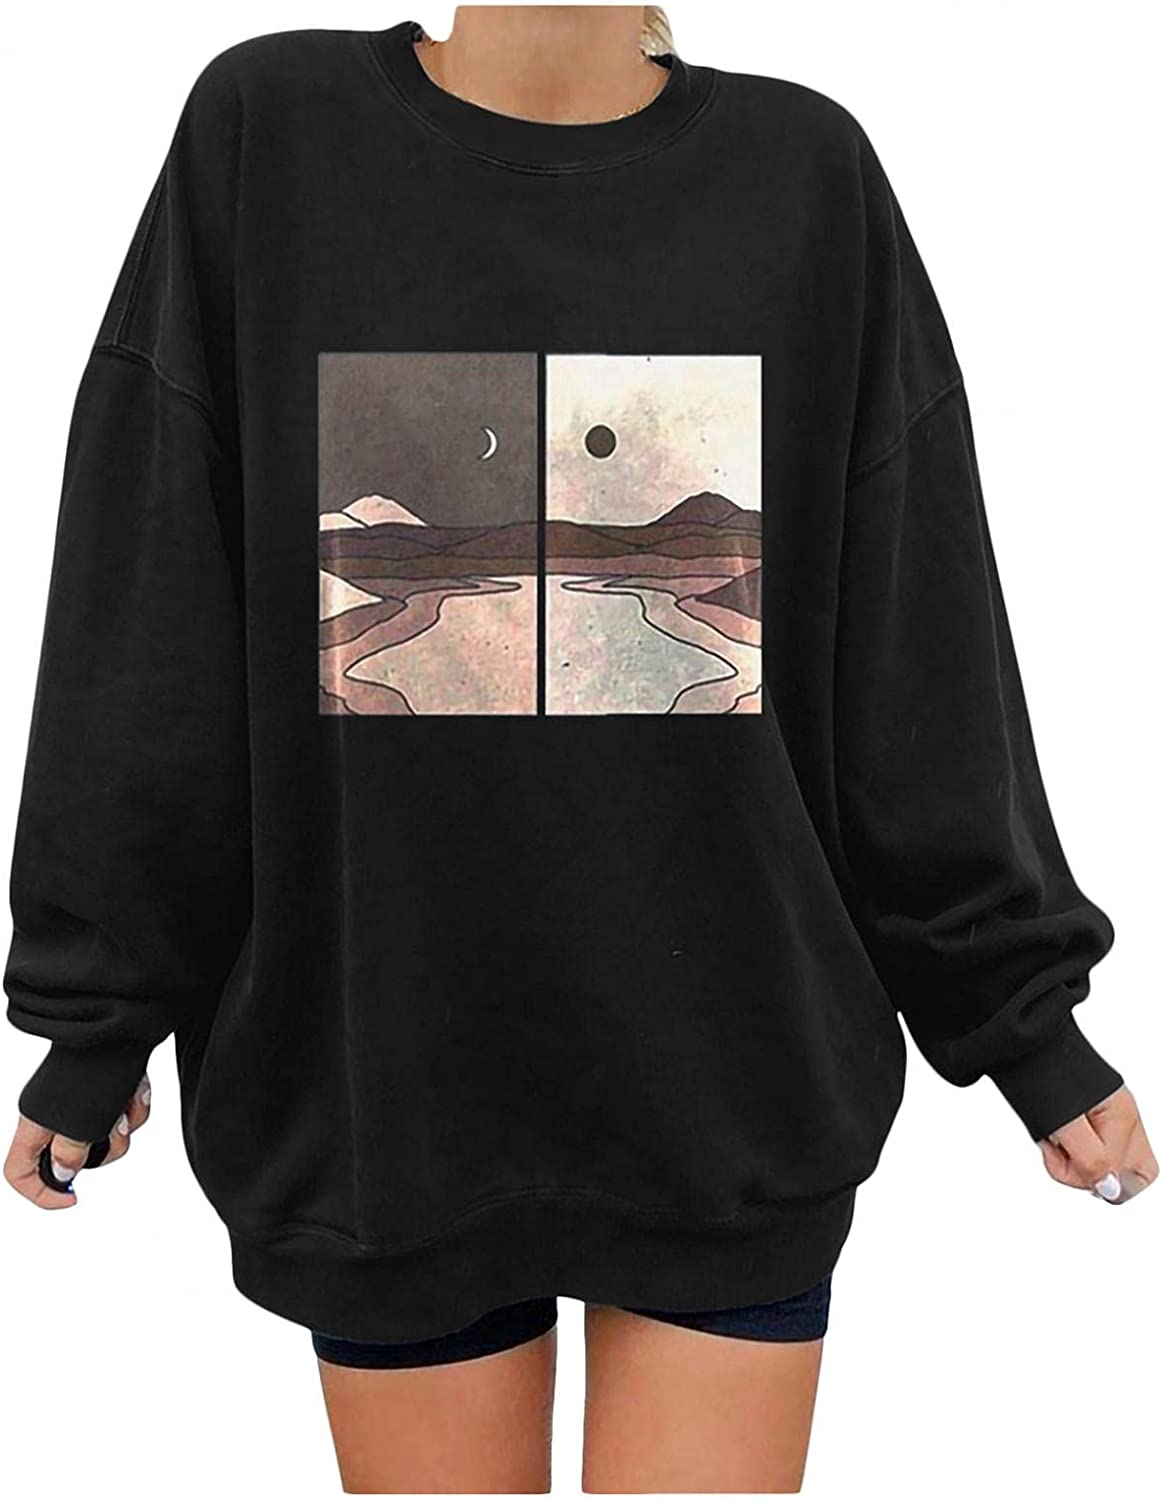 Sweatshirts for Teen Girls, Womens Oversized Crewneck Long Sleeve Sweater Shirts Vintage Graphic Plus Size Pullover Tops